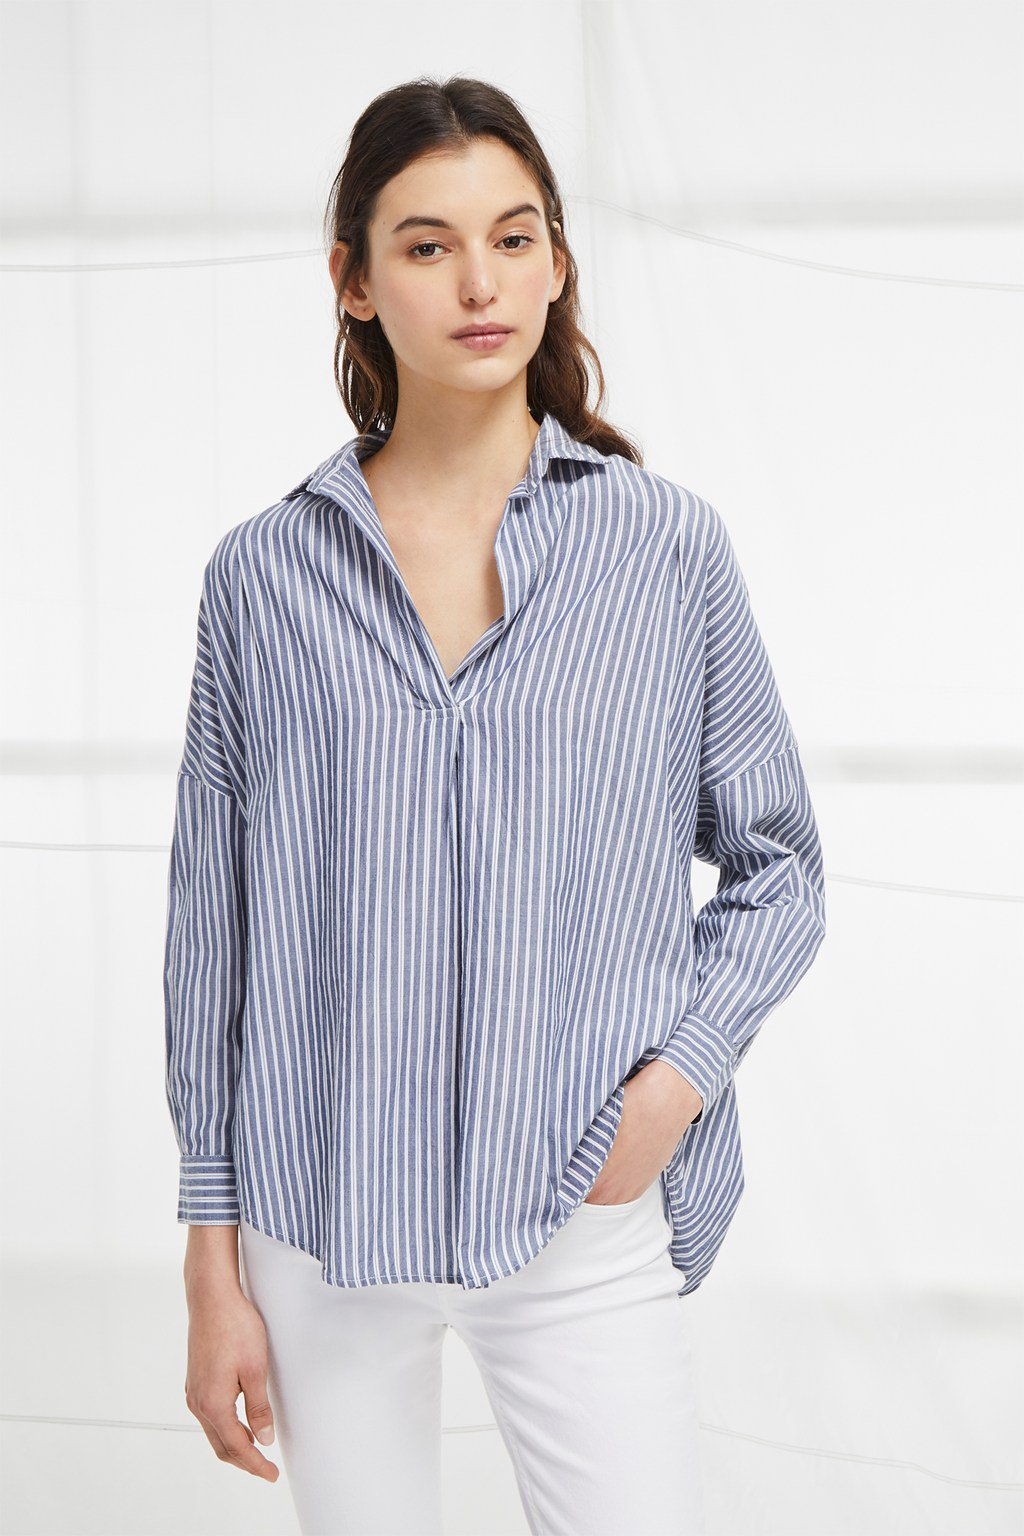 TATUS STRIPE POP OVER SHIRT - The Tatus Stripe Pop Over Shirt is a fresh update for your separates. The oversized pull-over shirt has a casual fit, with a relaxed collar and V-neckline. Long sleeves with large cuffs can be rolled up for more relaxed styling. The shirt is finished with a crisp blue and white stripe, adding colour to the understated piece, which will pair perfectly with shorts on warmer days.